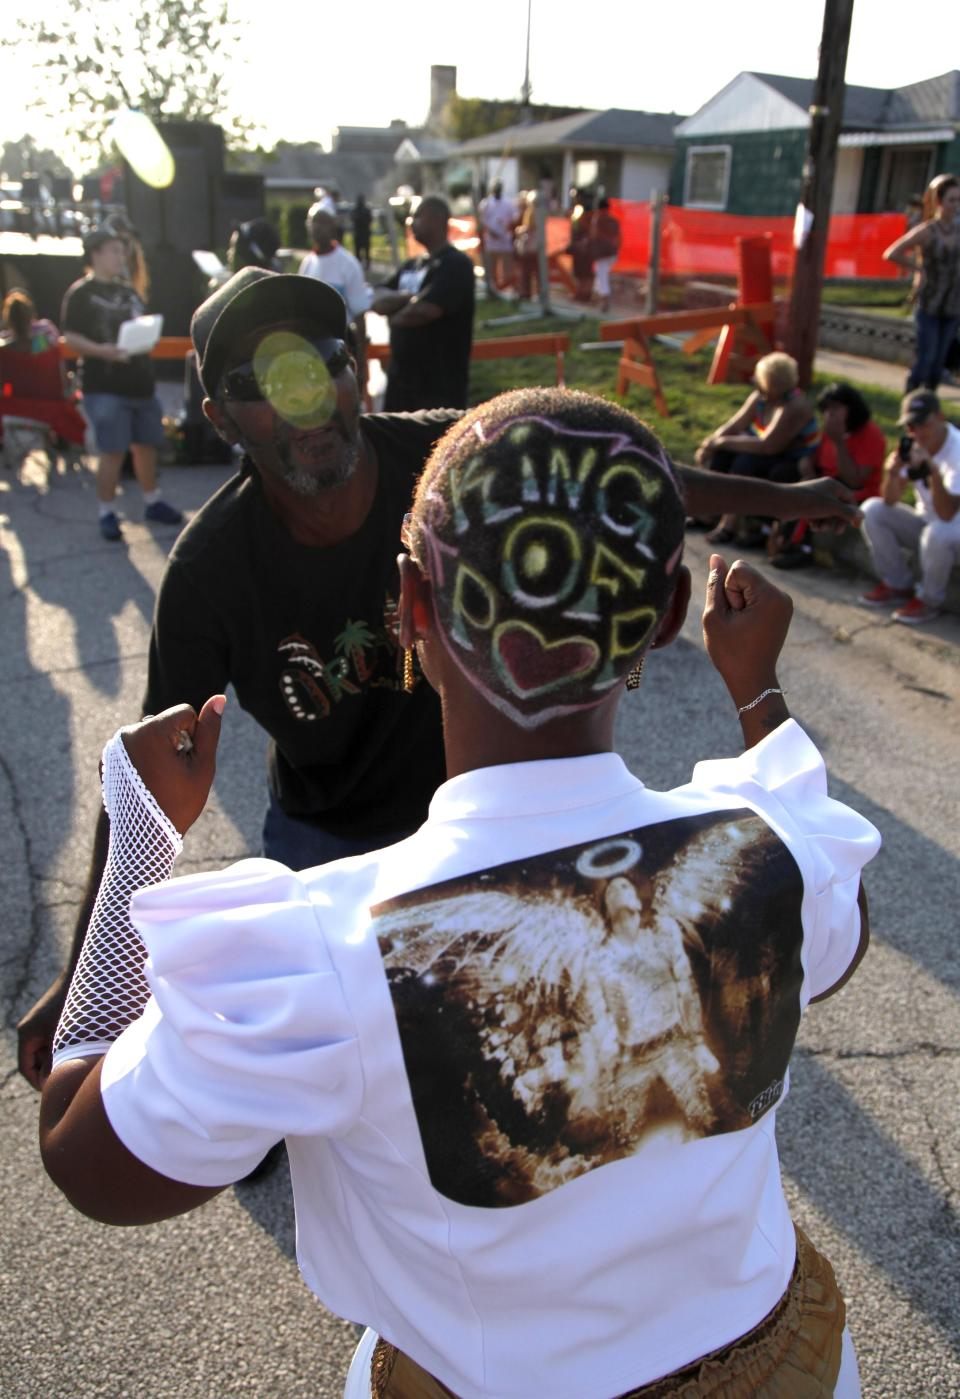 Angela Burnham and Lawrence Quarles dance to recorded music outside Jackson's boyhood home during celebrations marking what would have been Jackson's 54th birthday Wednesday, Aug. 29, 2012, in Gary, Ind.  (AP Photo/Charles Rex Arbogast)